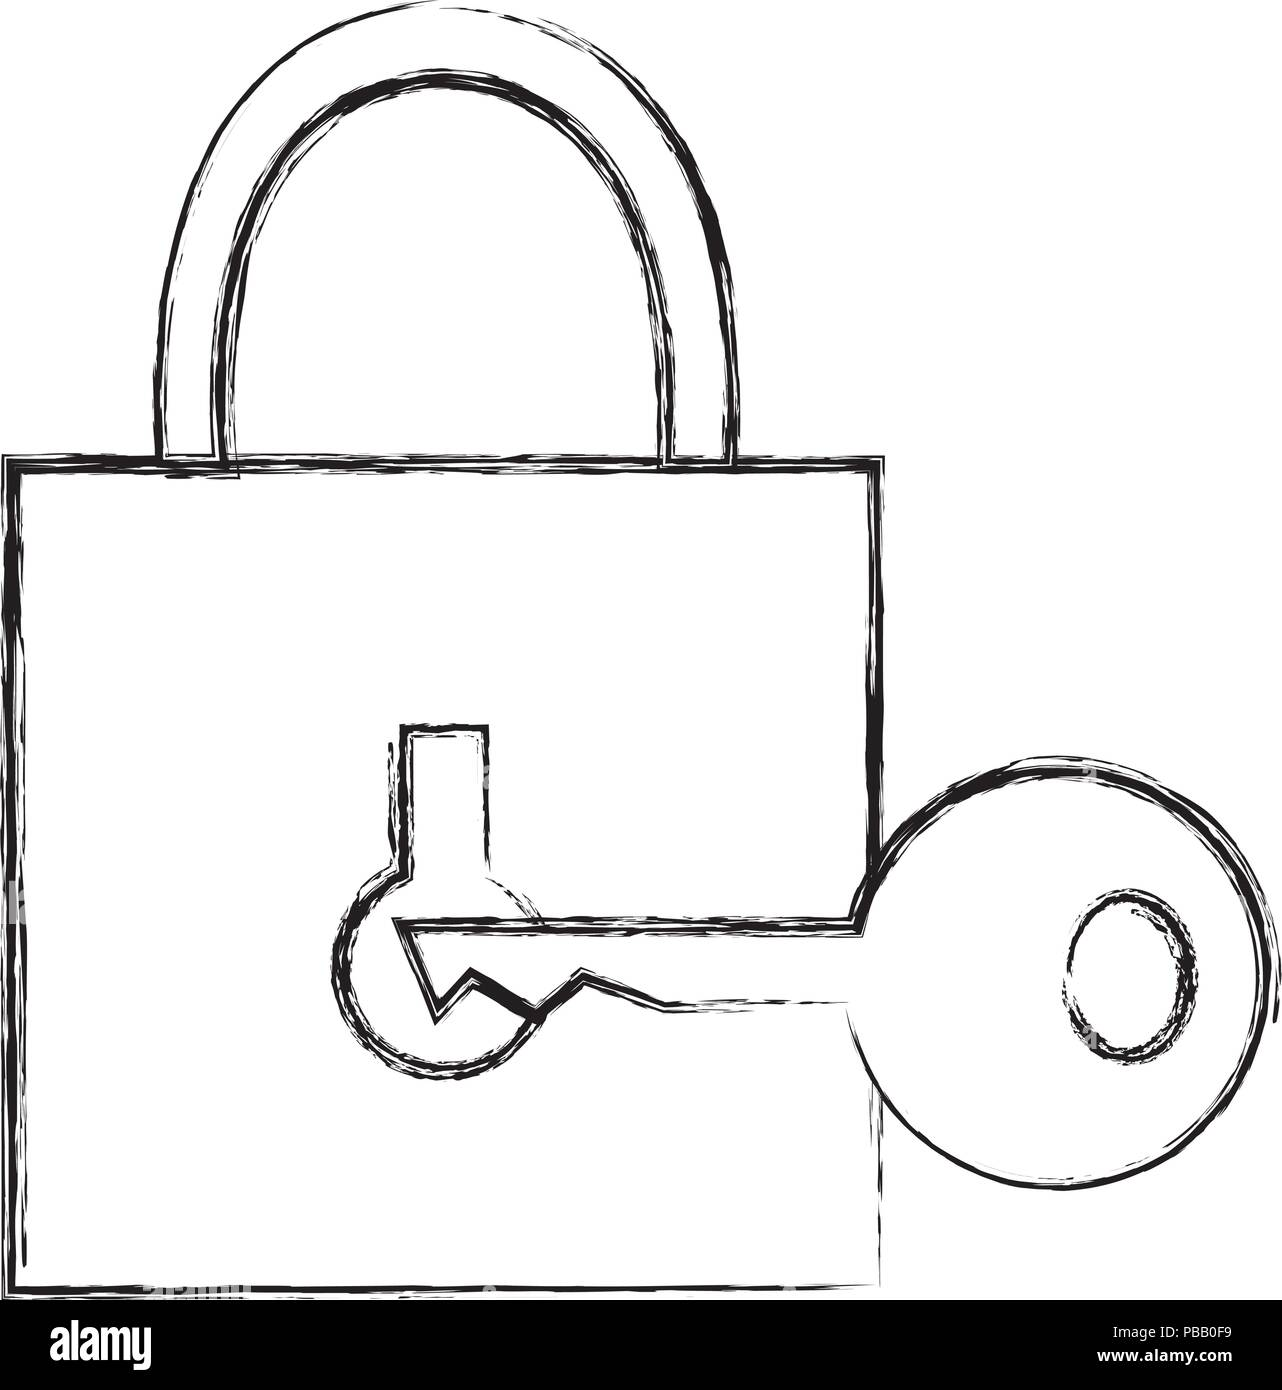 safe secure padlock with key - Stock Image